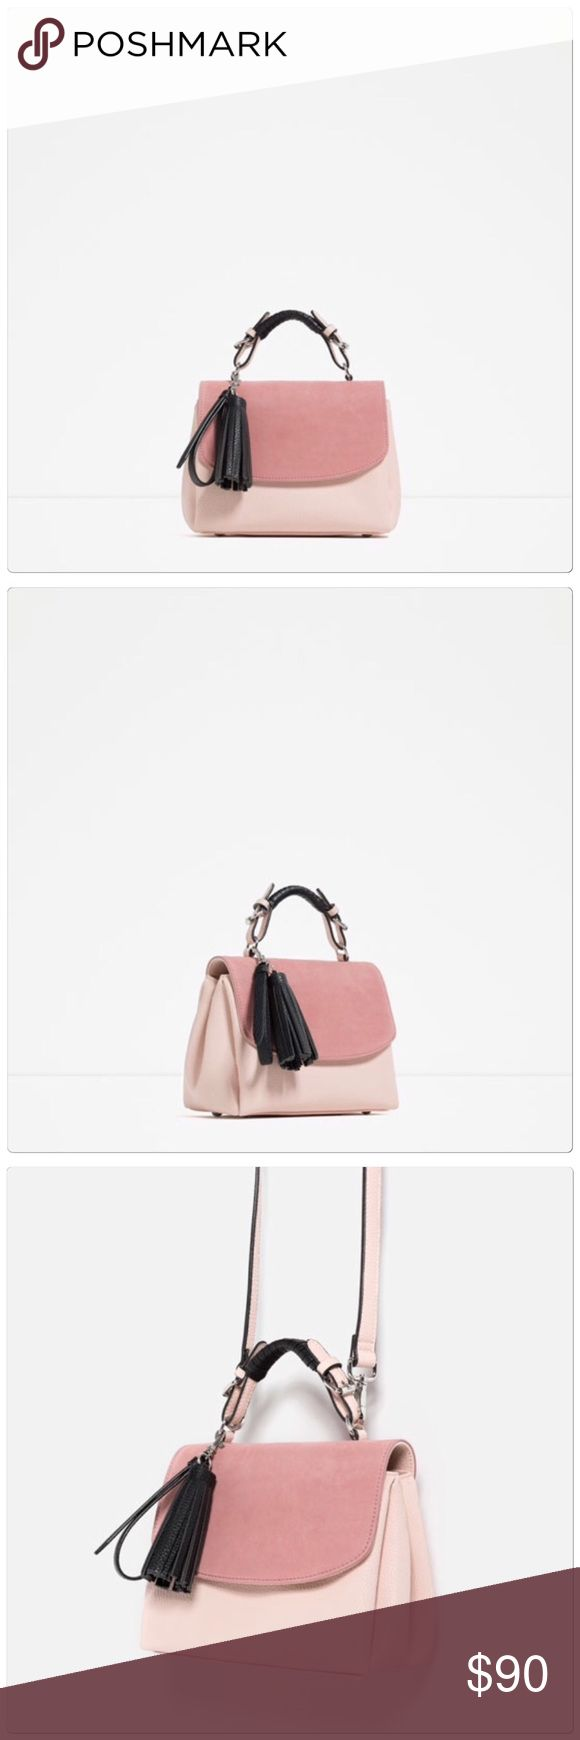 HP  Zara pink leather satchel purse Pink leather satchel purse. Comes with removable strap to wear as crossbody.  Measures approx 9x6x4.  Brand new Zara Bags Satchels